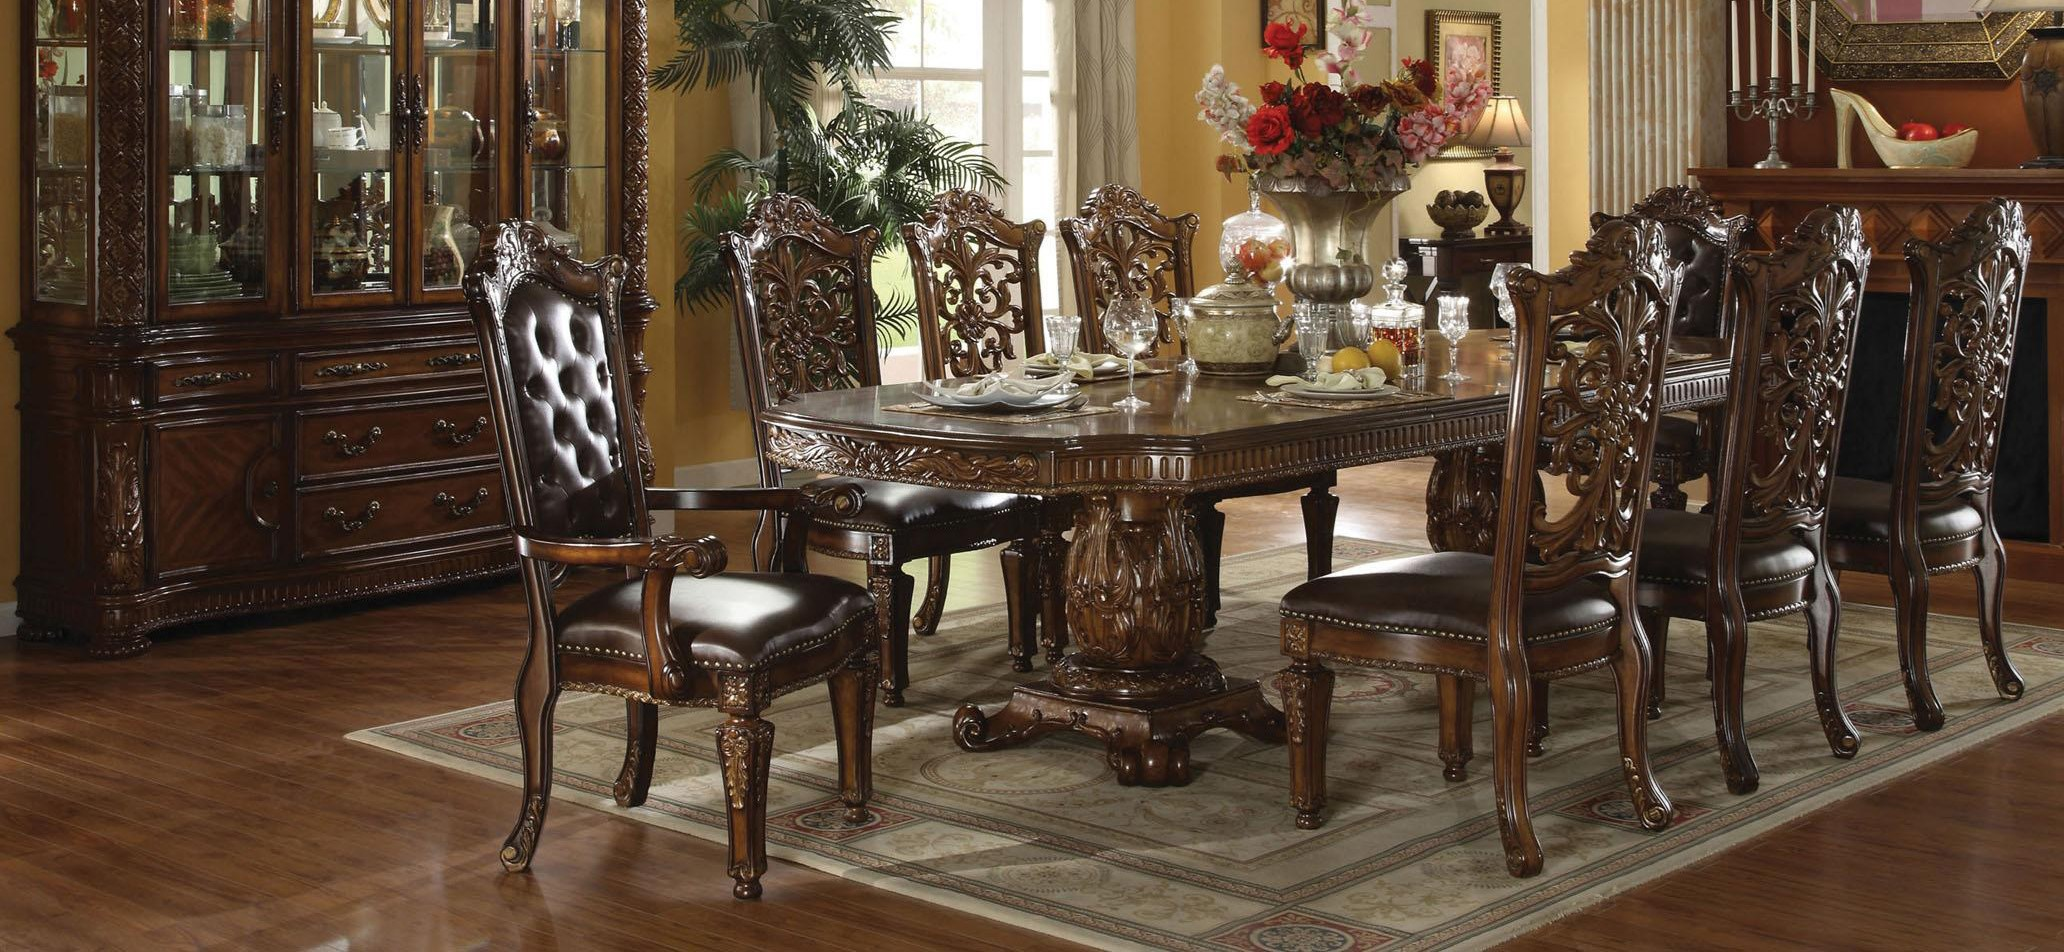 awesome dining room furniture phoenix contemporary awesome dining room furniture phoenix contemporary